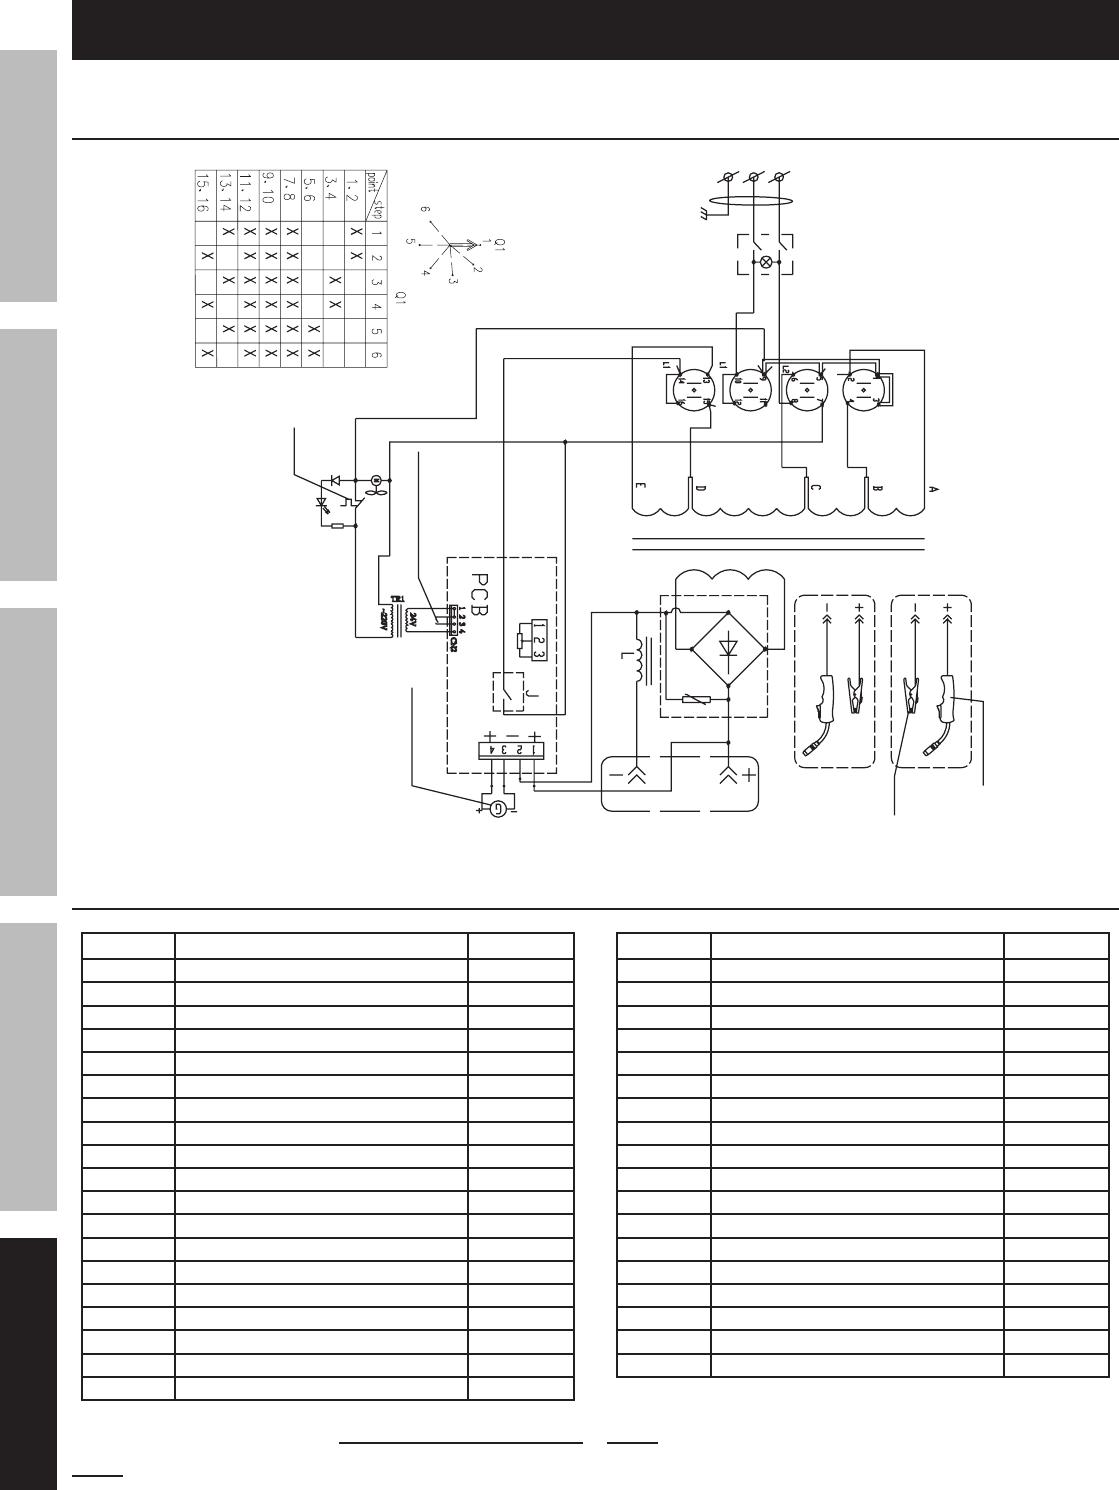 chicago electric generator wiring diagram wiring diagrams page 30 of chicago electric welder 68886 user